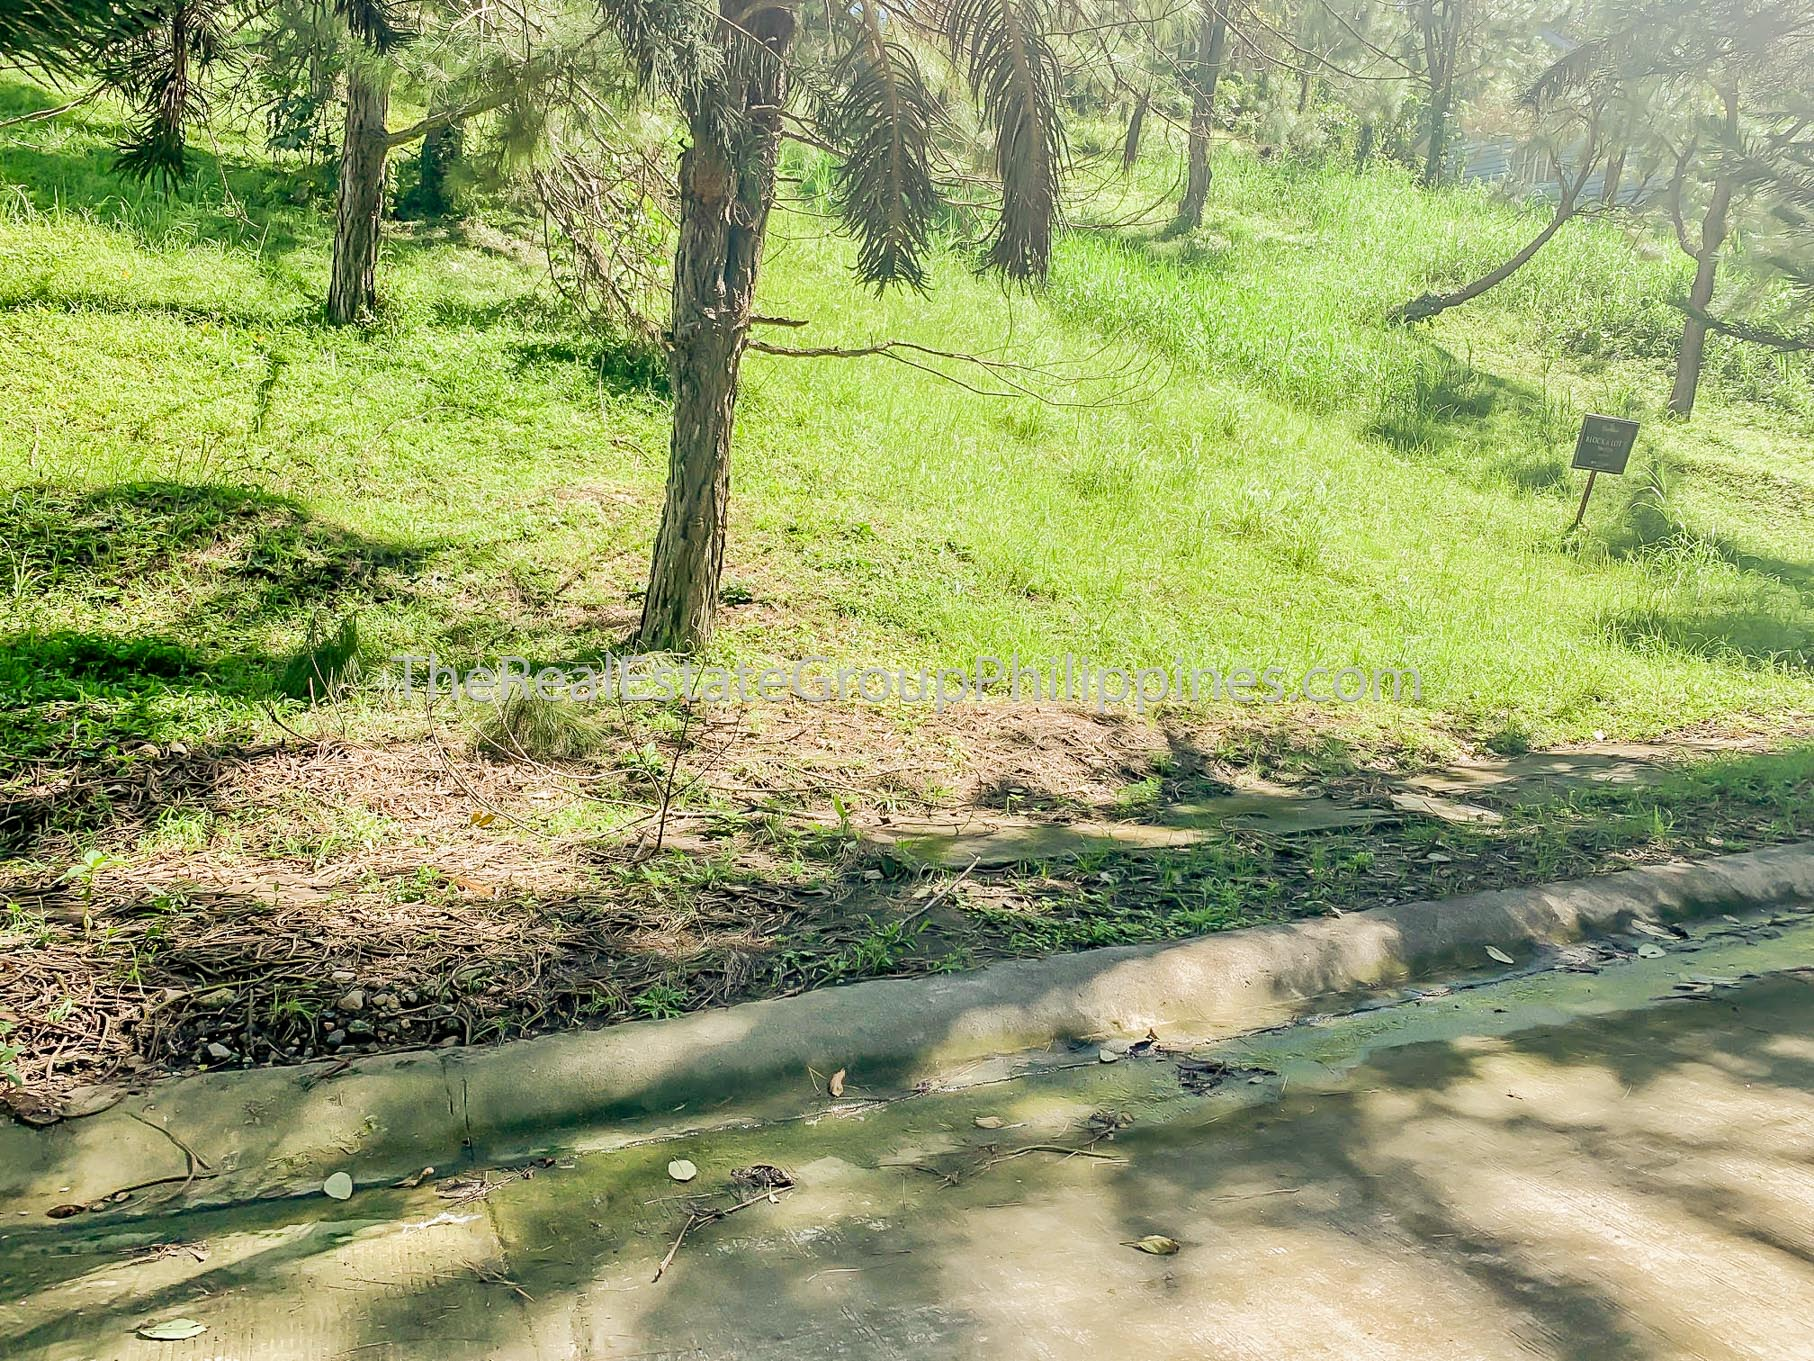 Residential Lot For Sale, Crosswinds Resort Suites, Tagaytay City (6 of 8)